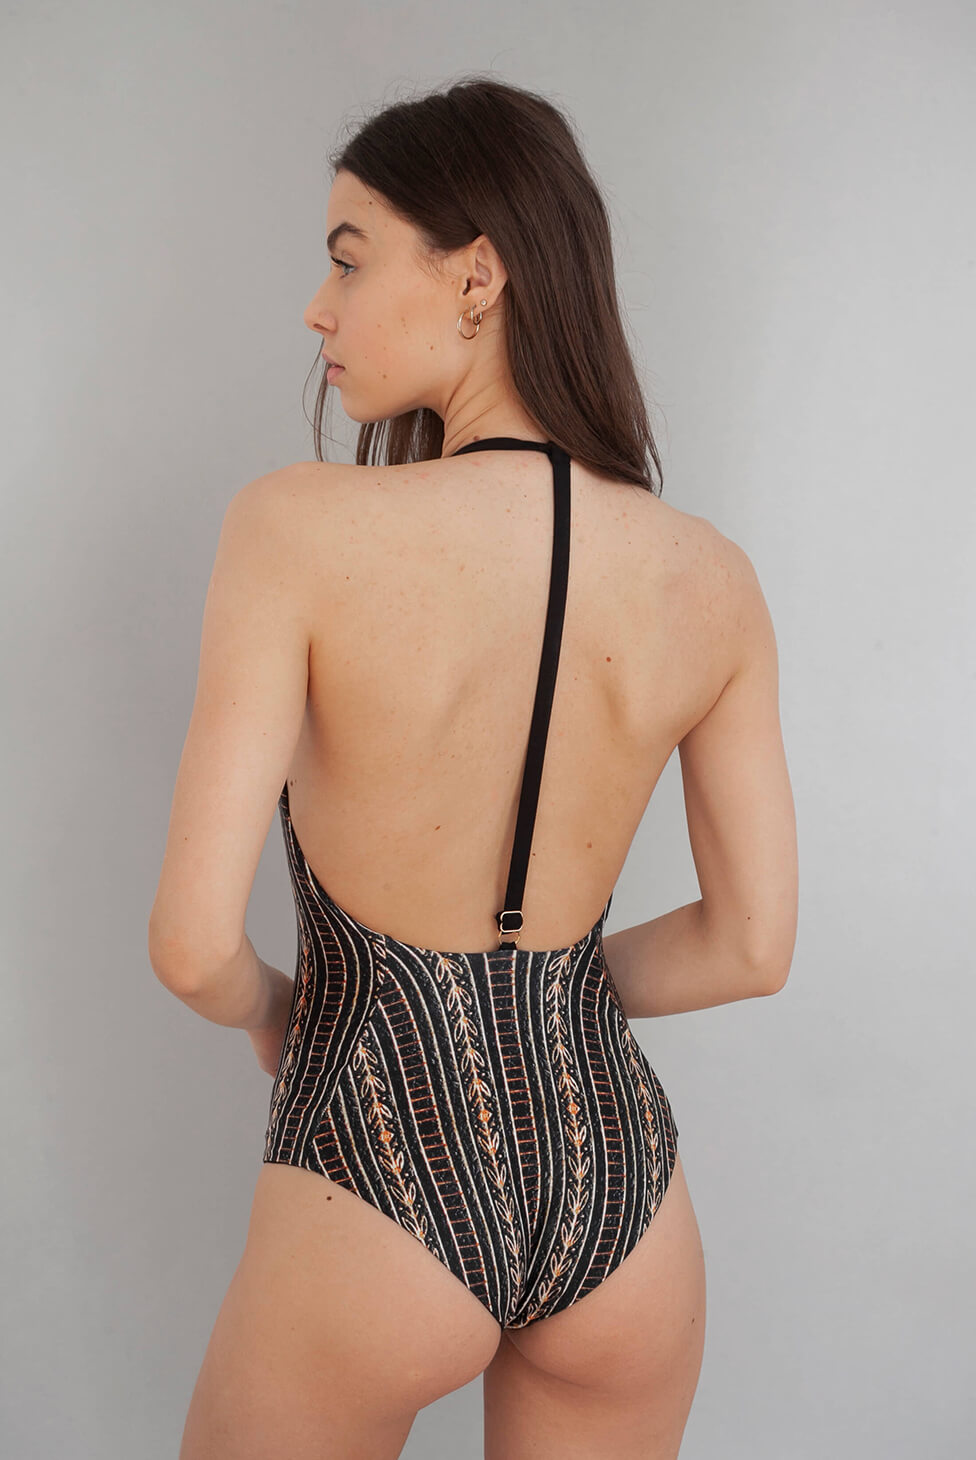 Wolven Zephyr V-One Piece Deep V neckline Adjustable back strap Mid–coverage bottom Reverses to solid black Reversible Sustainable Swimwear